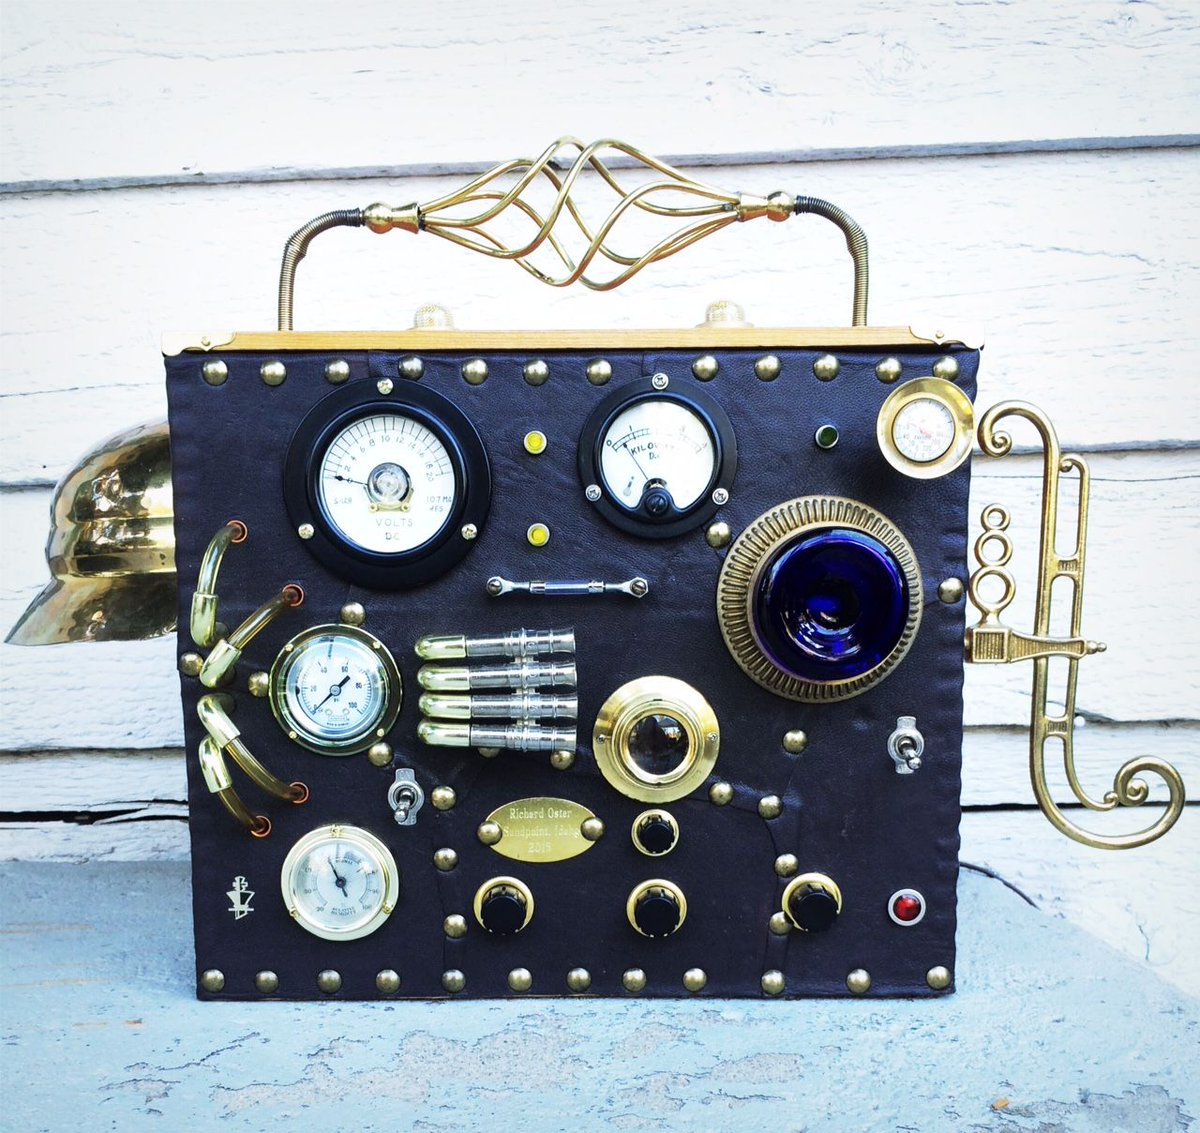 Gorgeous #music! #Steampunk #Radios - Welcome to https://t.co/V46rOLZj4t https://t.co/yVpdQUTjoC #steampunkart #steampunkstyle #steampunkdenver #denversteampunk #coloradosteampunk #masonarts